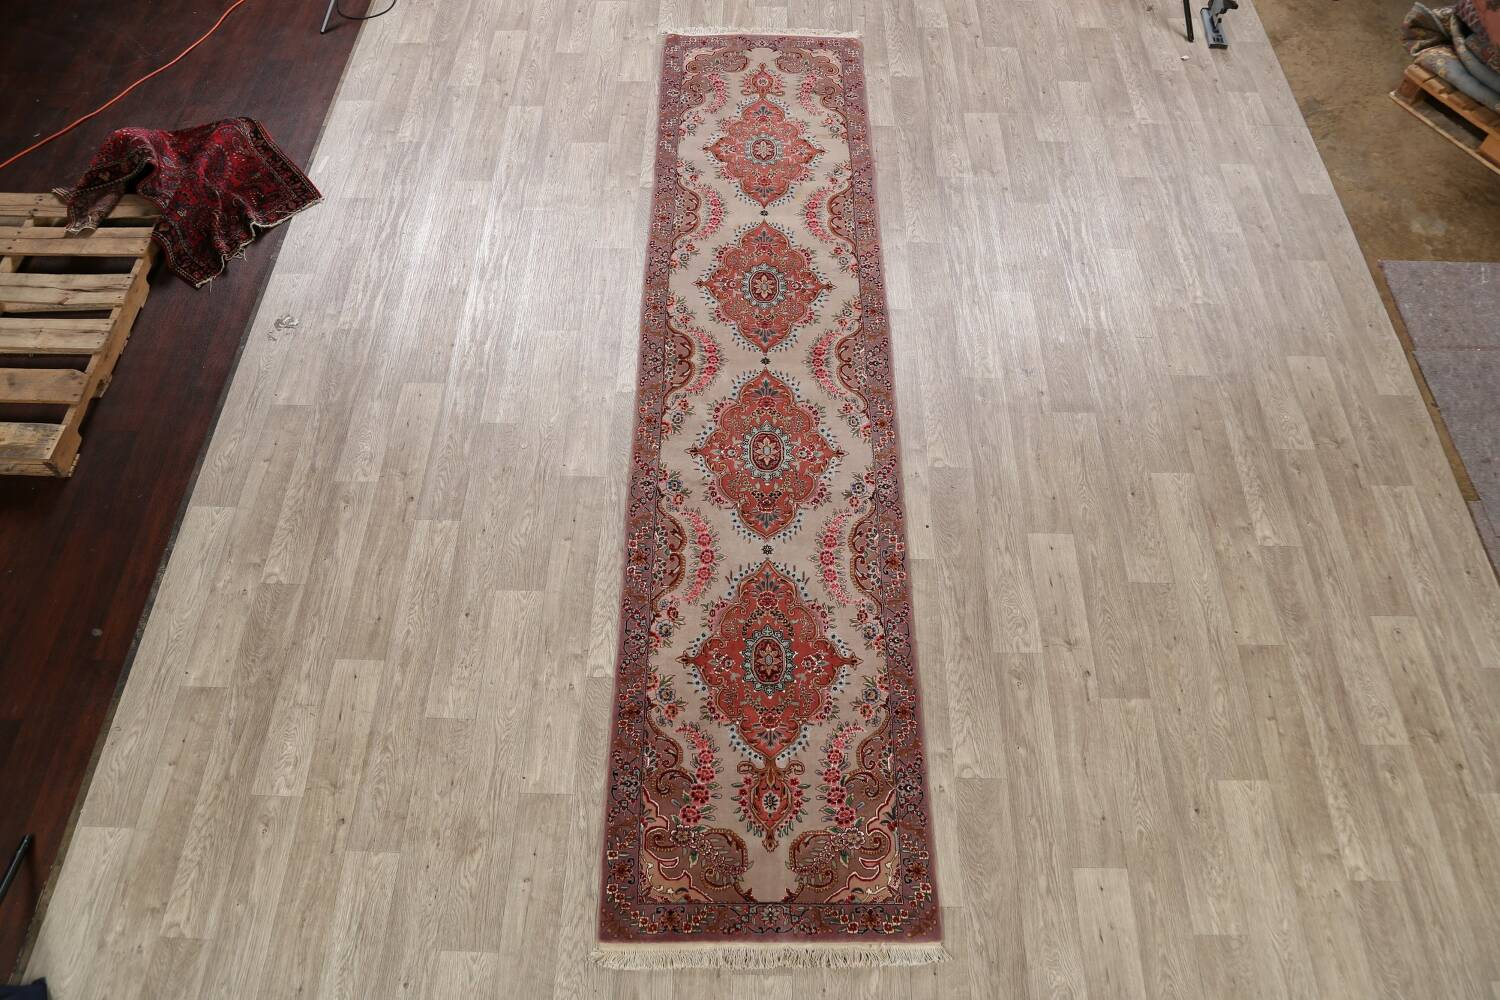 All-Over Floral Tabriz Persian Runner Rug 3x12 image 2